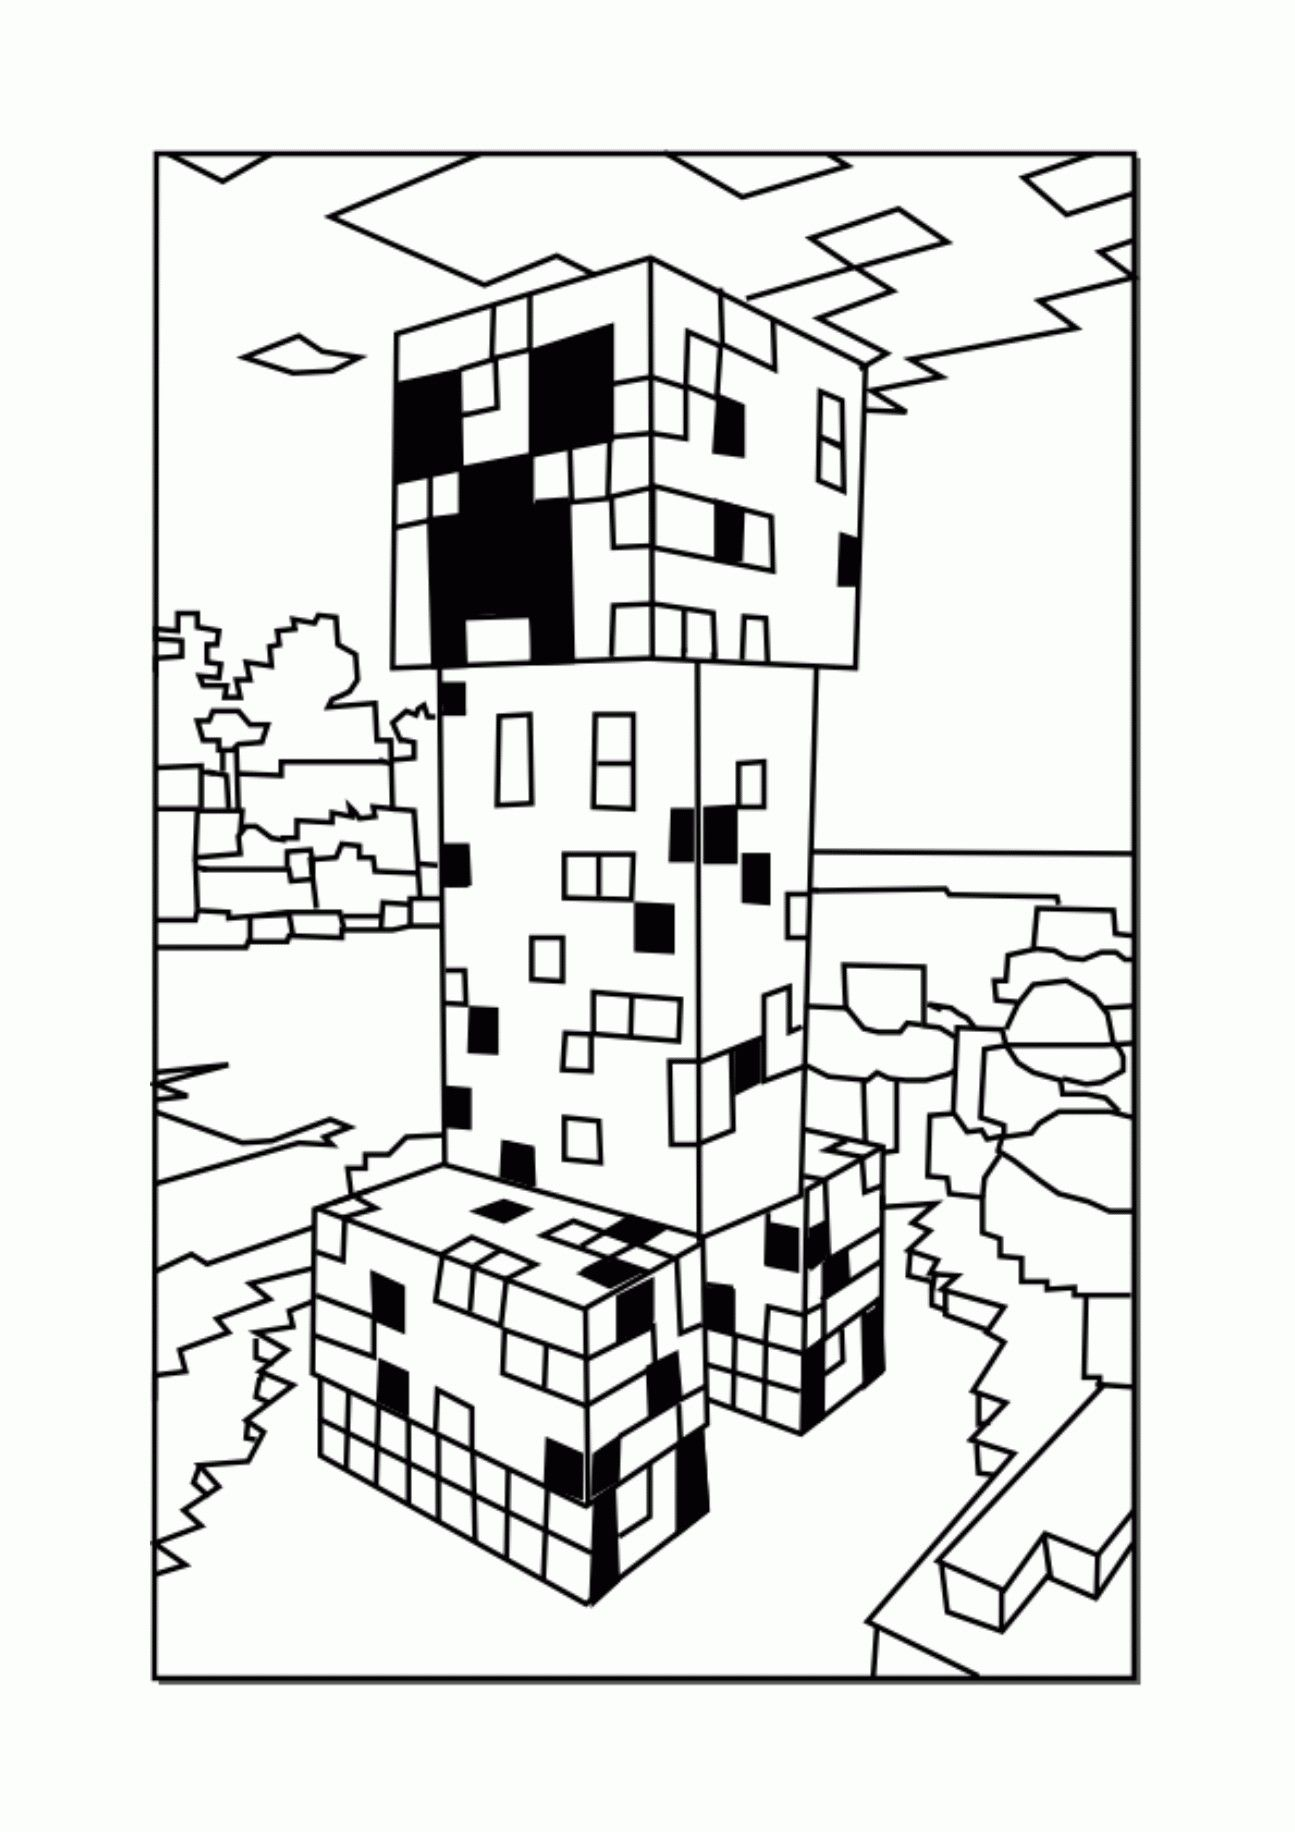 10 Minecraft Coloring Book Minecraft Coloring Creeper Minecraft Coloring Game Minecraft Colorin Minecraft Coloring Pages Coloring Pages Free Coloring Pages